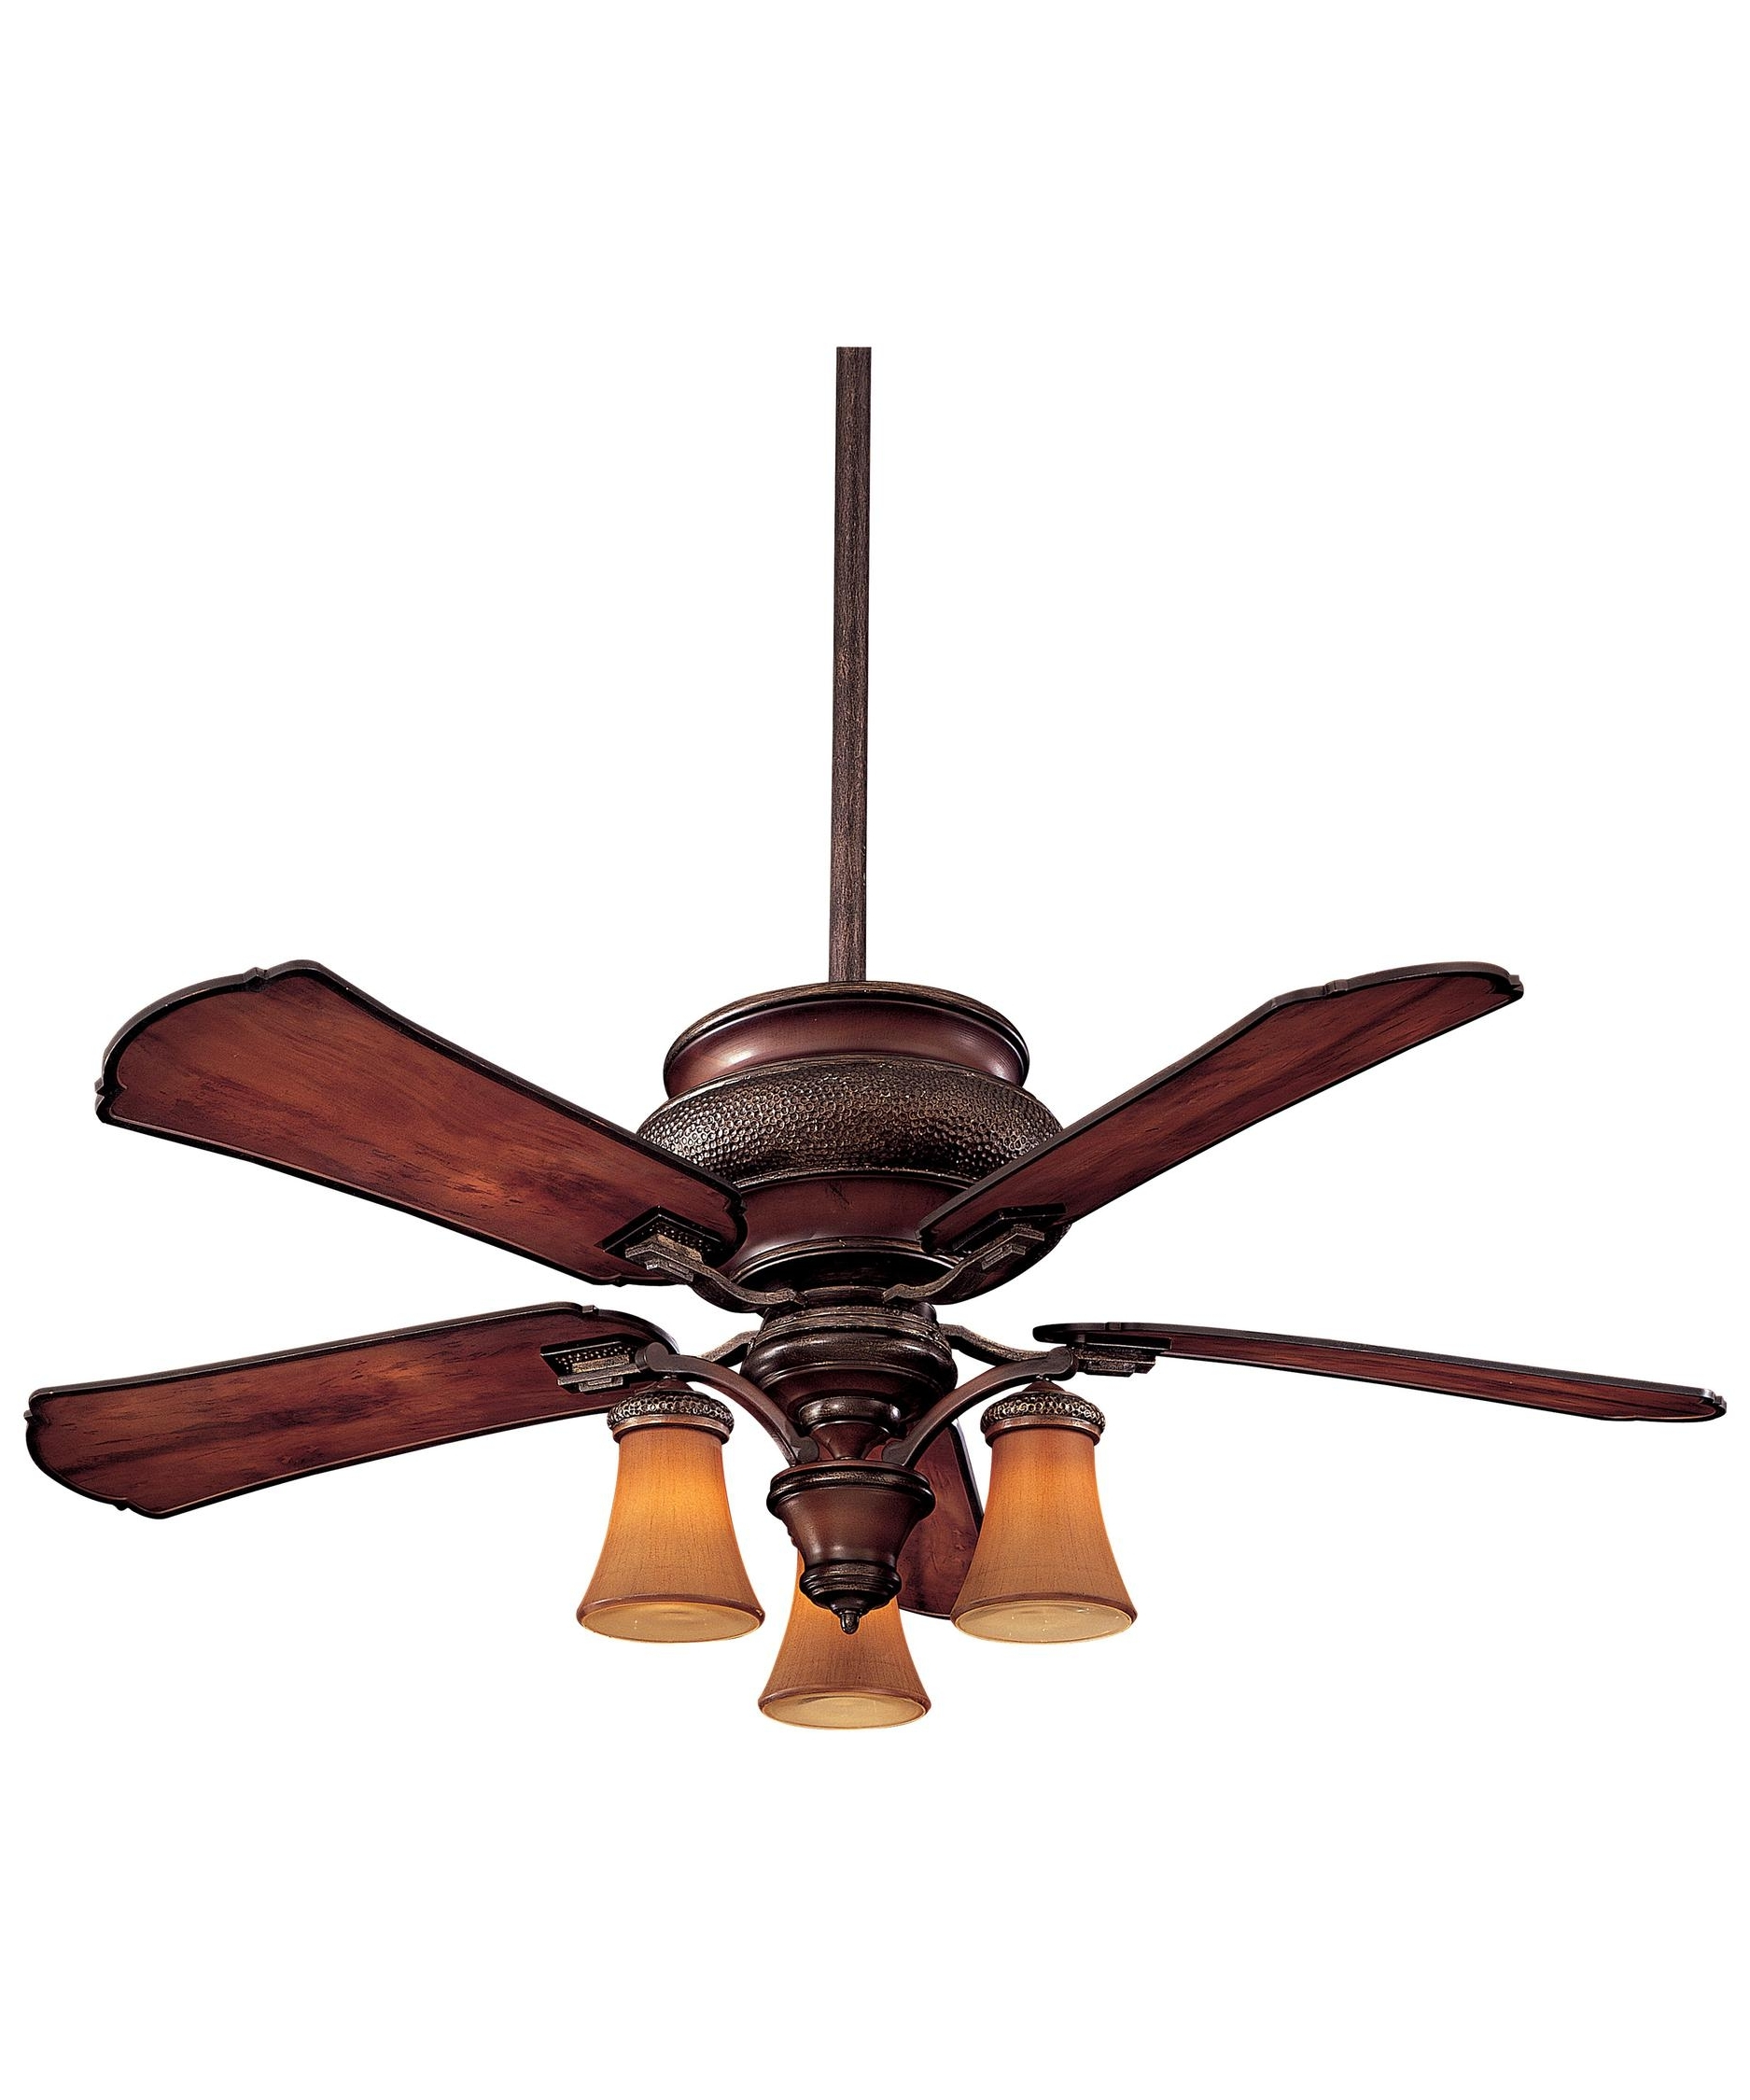 Preferred Craftsman Ceiling Fan Light Kit Outstanding Lowes Ceiling Fans With With Regard To Mission Style Outdoor Ceiling Fans With Lights (View 17 of 20)